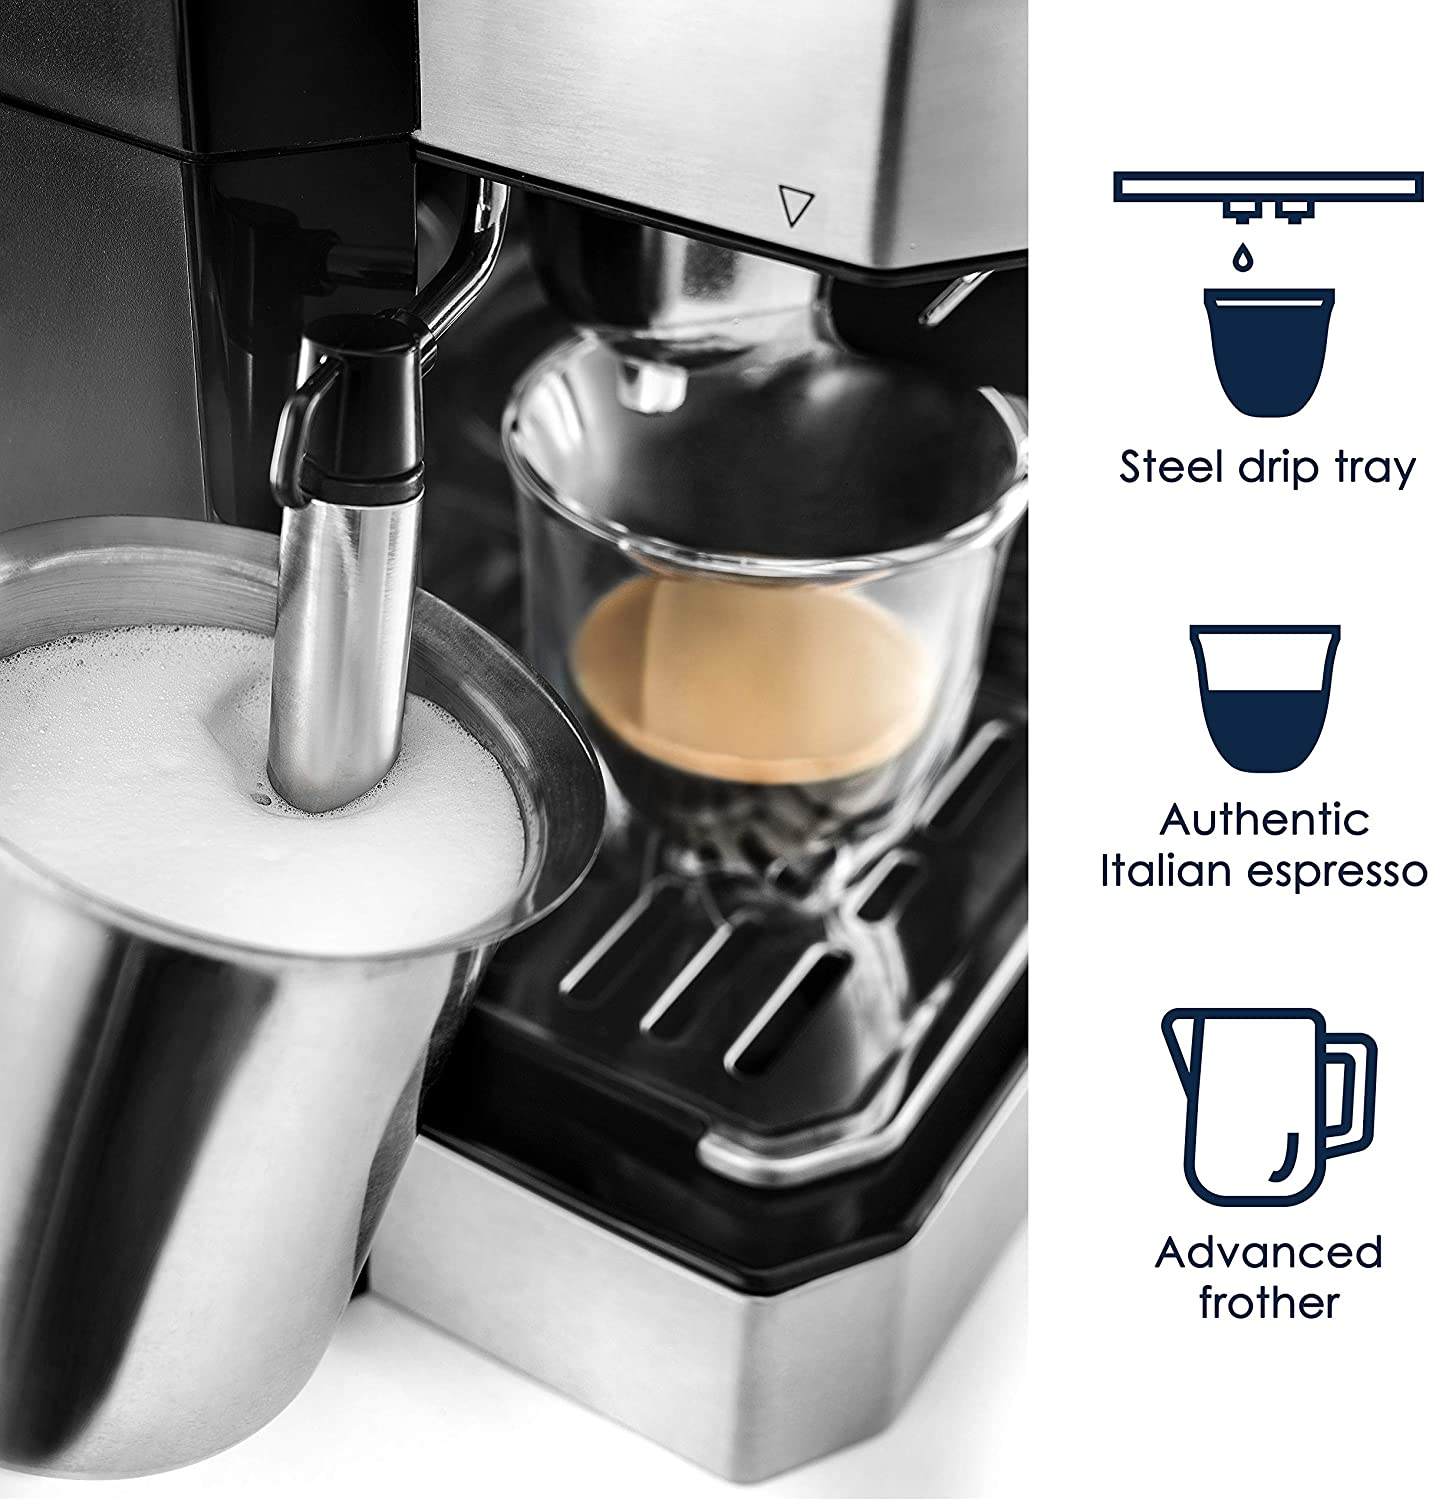 Best Espresso and Coffee Maker in 2020: Reviews & Buying Guide 5